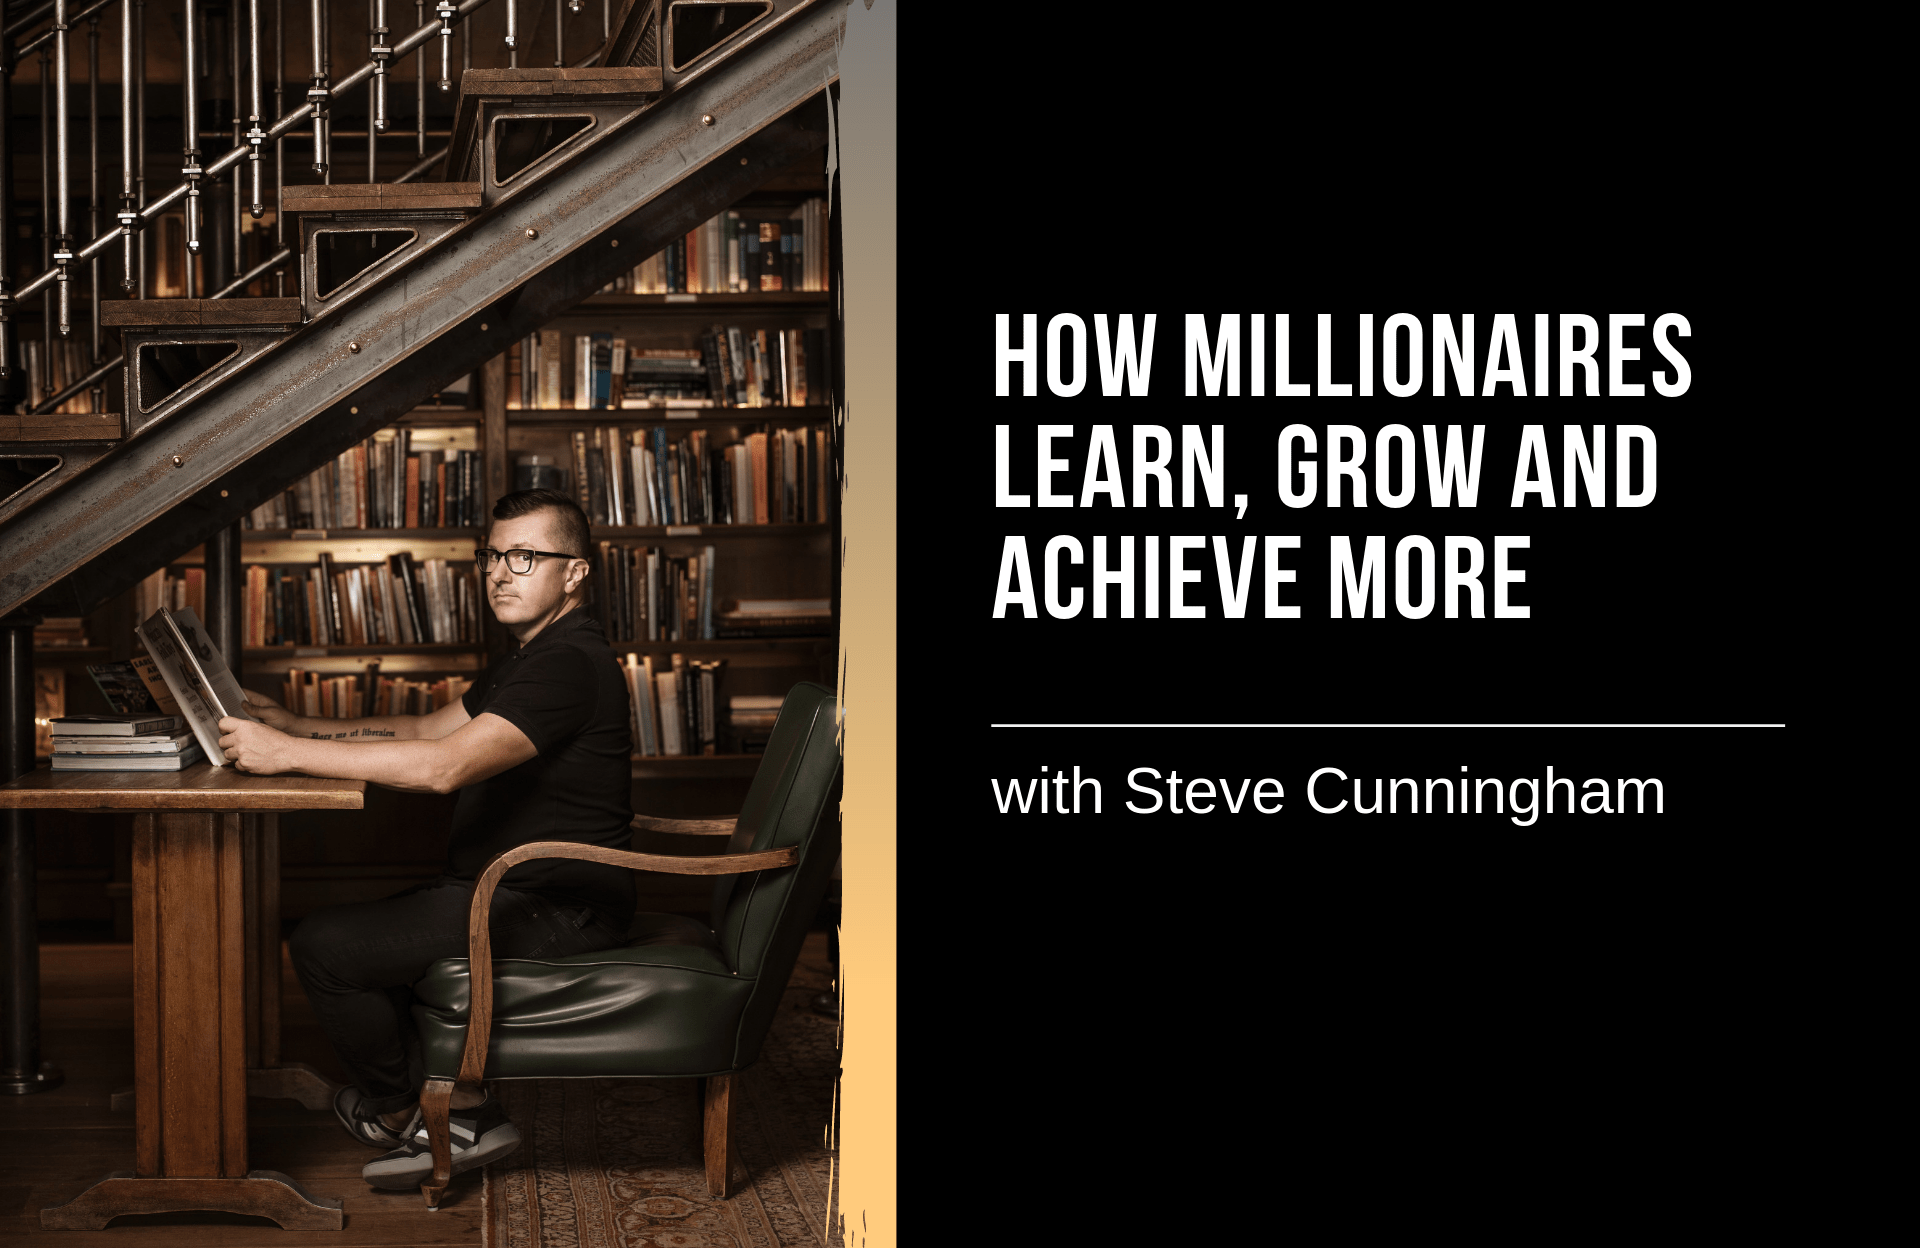 How Millionaires Learn, Grow and Achieve More with Steve Cunningham